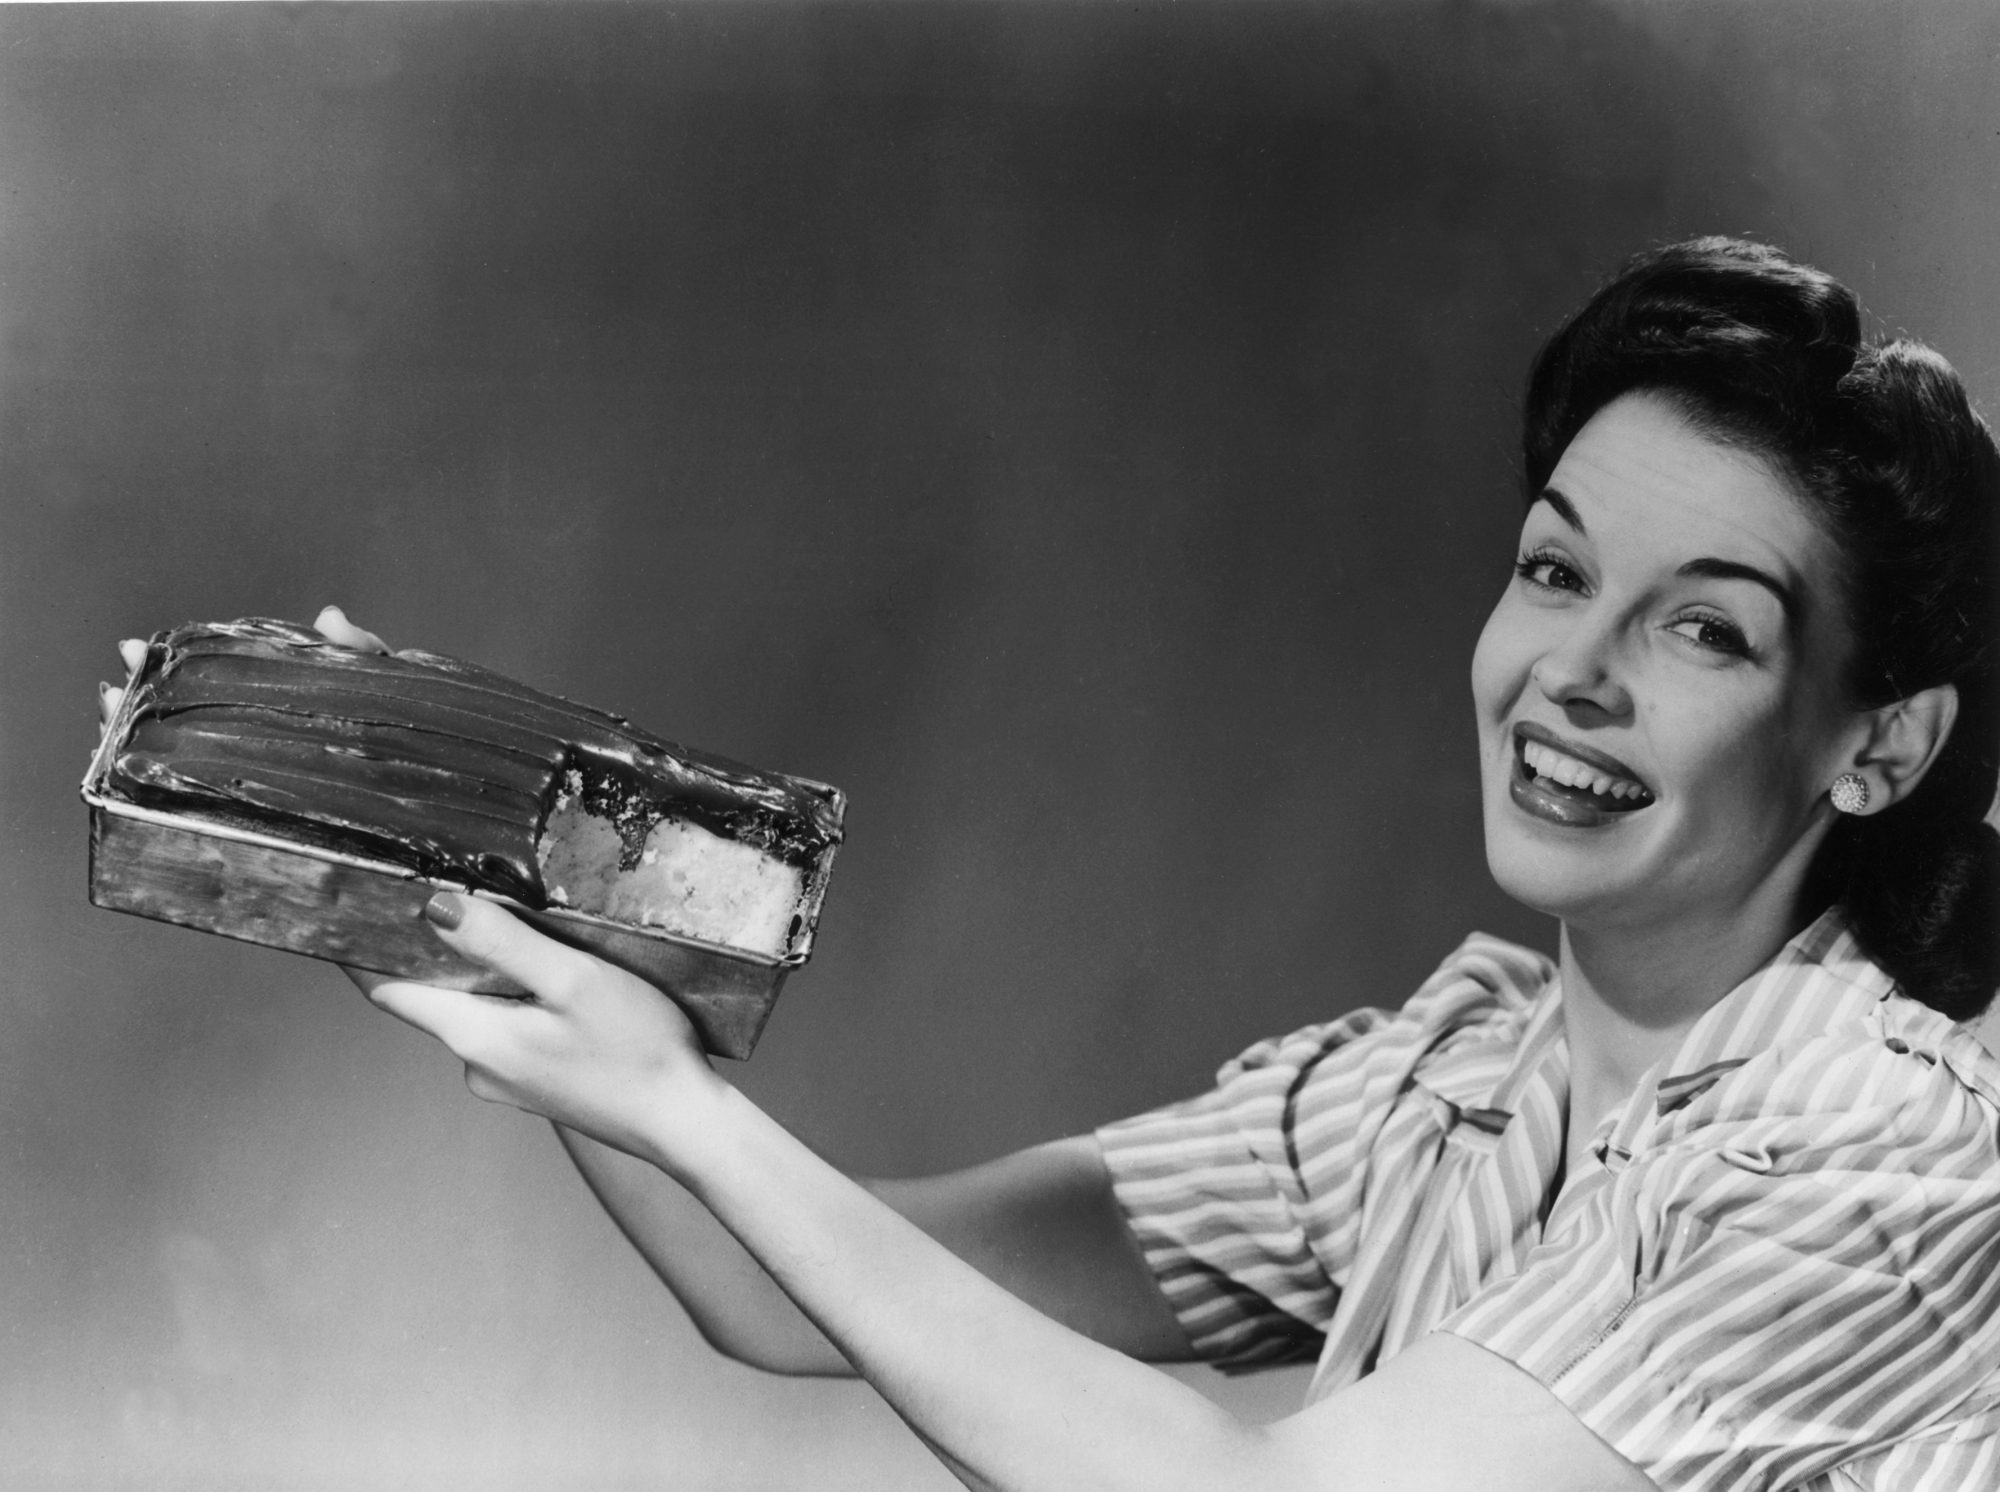 Vintage Woman with Cake